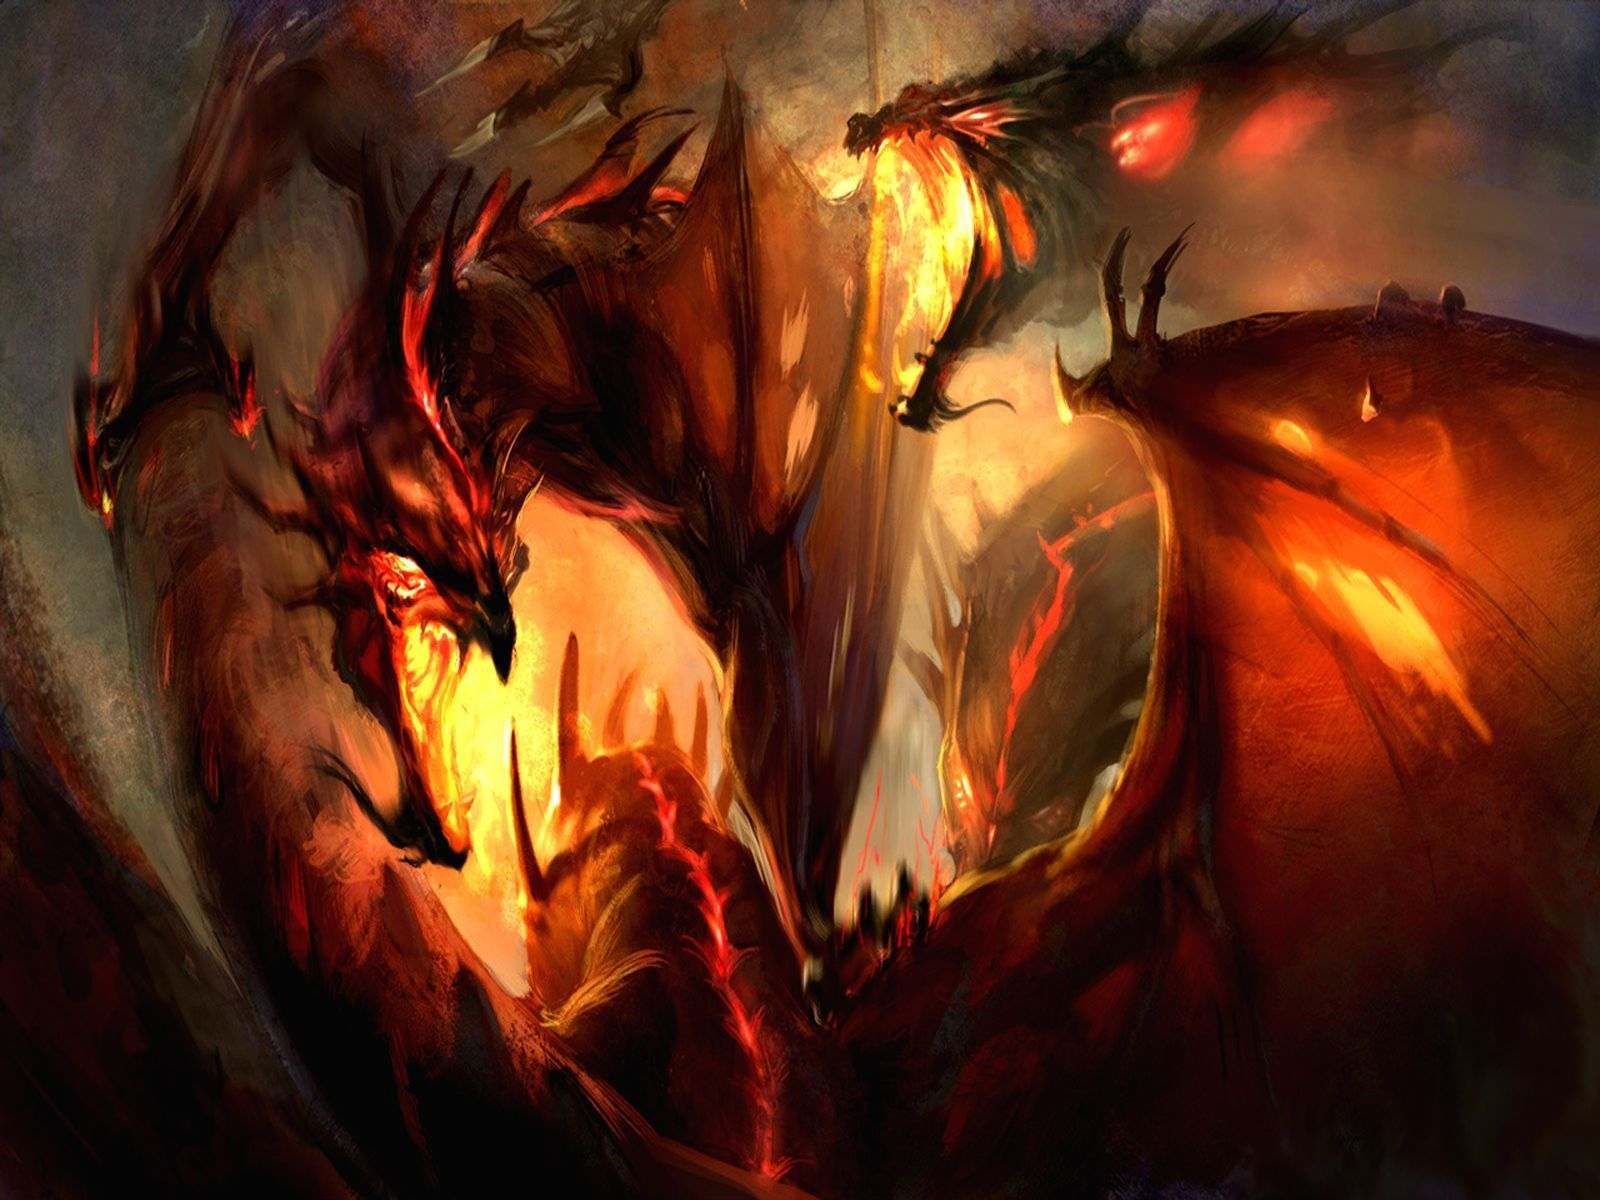 Hd Awesome Dragon 4k Photo For Pc